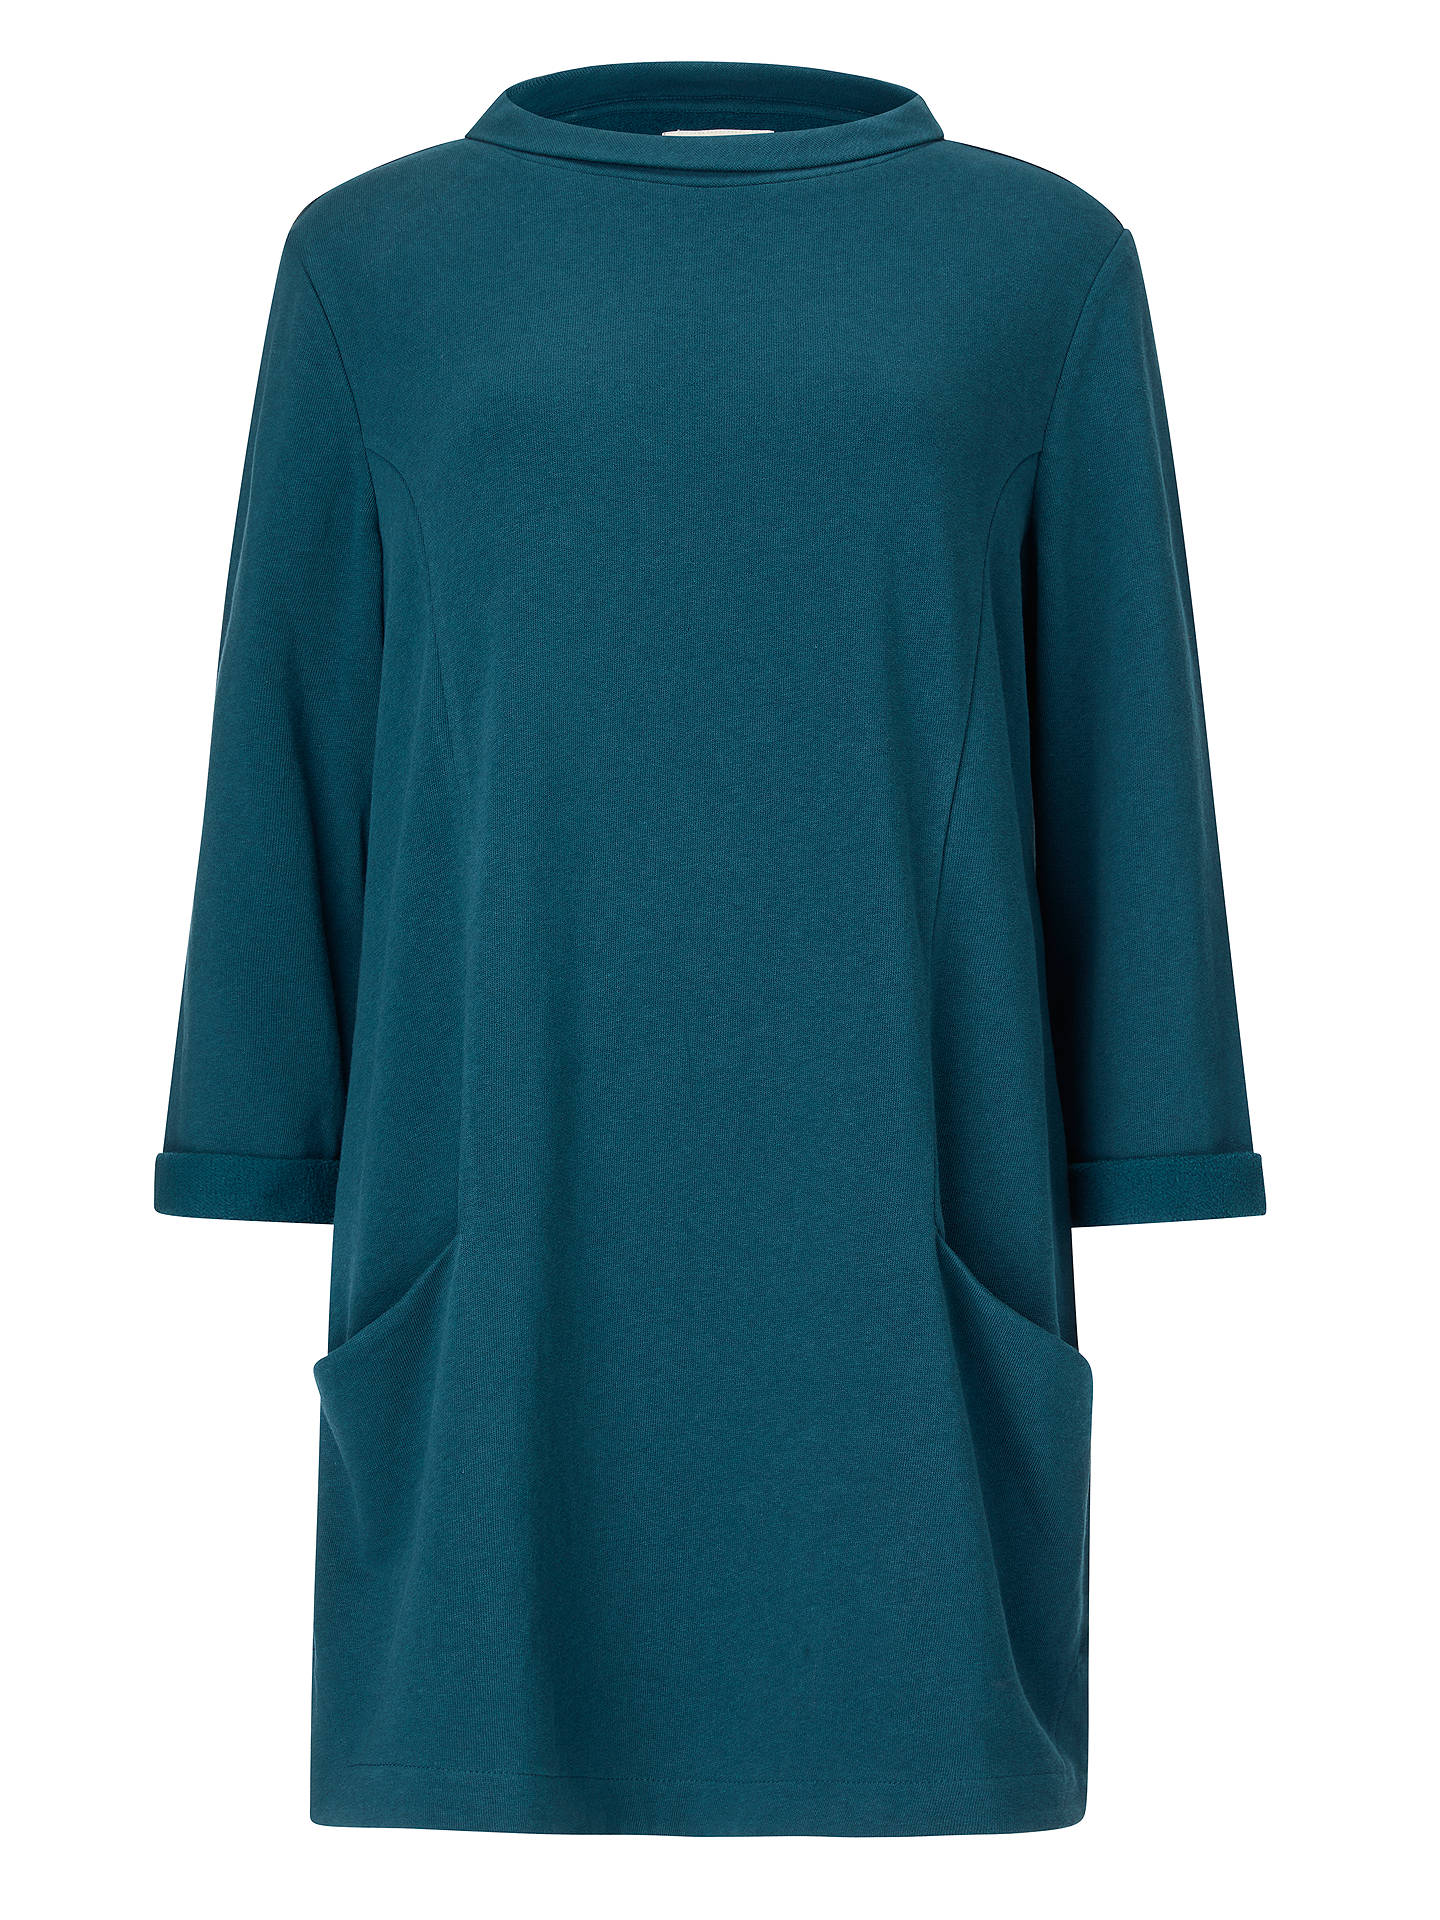 Buy Seasalt Dark Skies Tunic, Dark Lake, 18 Online at johnlewis.com